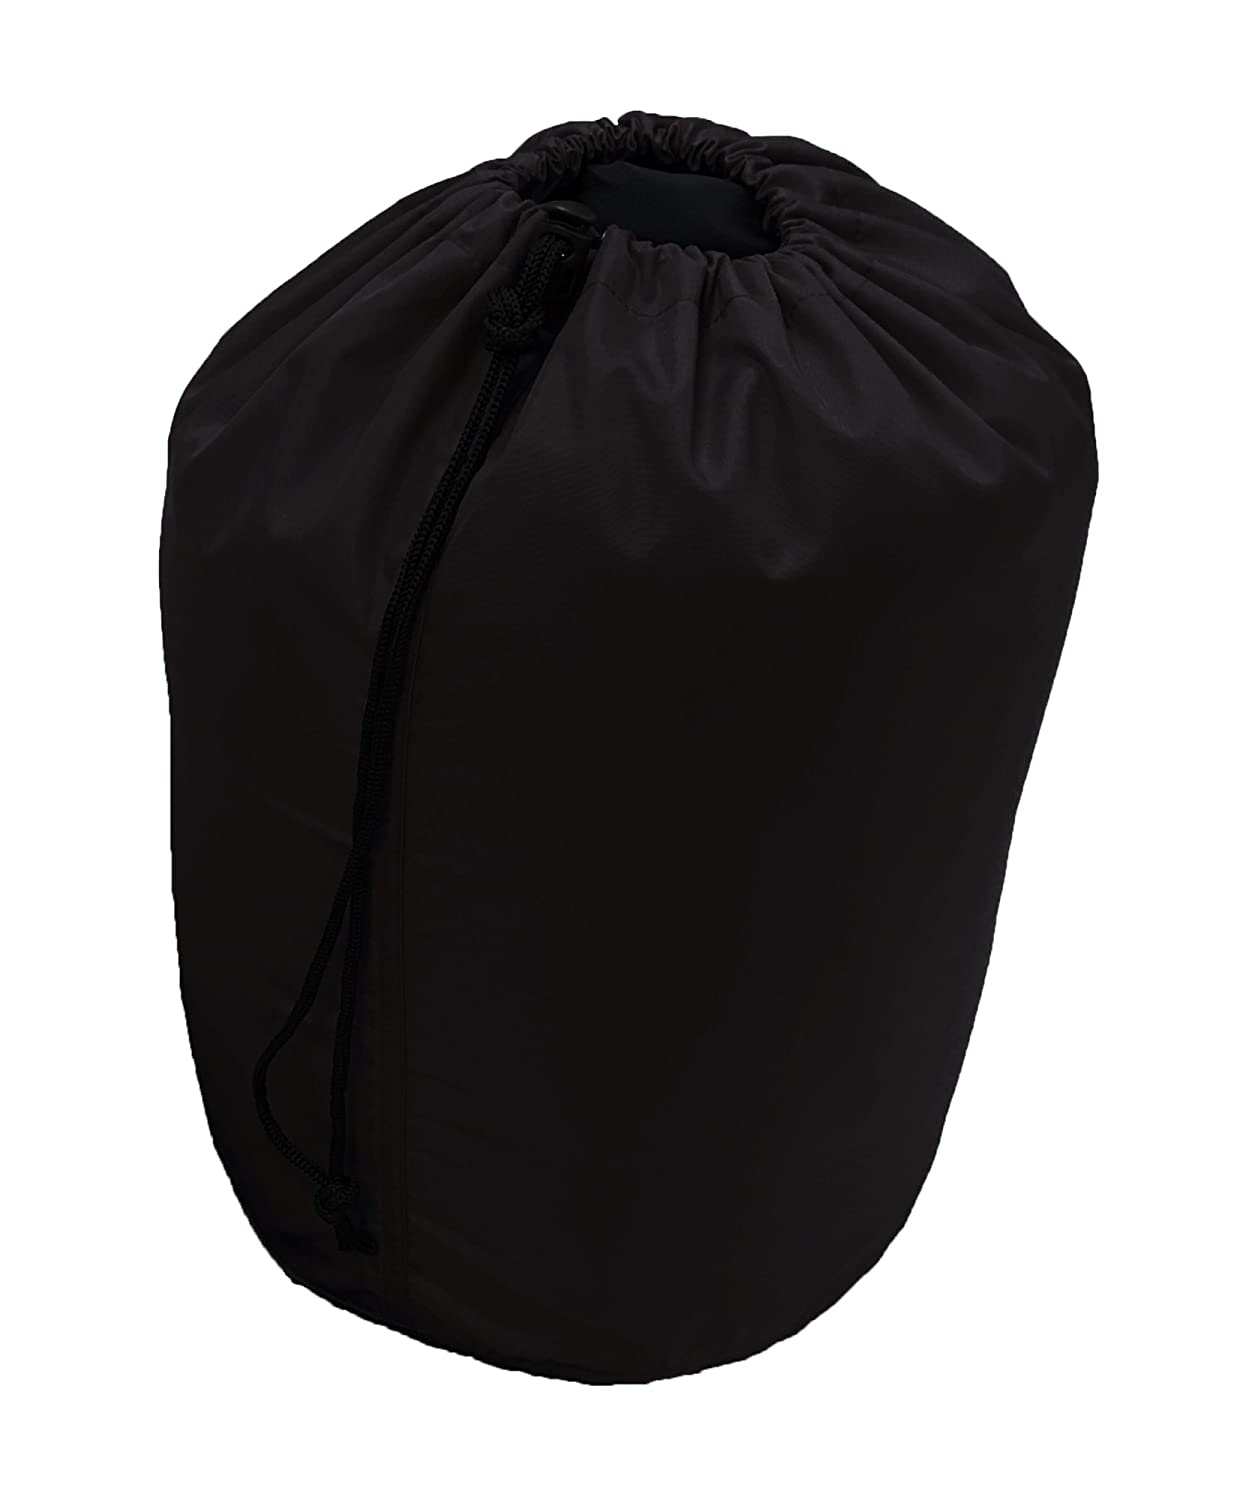 Amazon.com : Adoretex Stuff Sack Swim Parka Bag - ADULT - Black ...